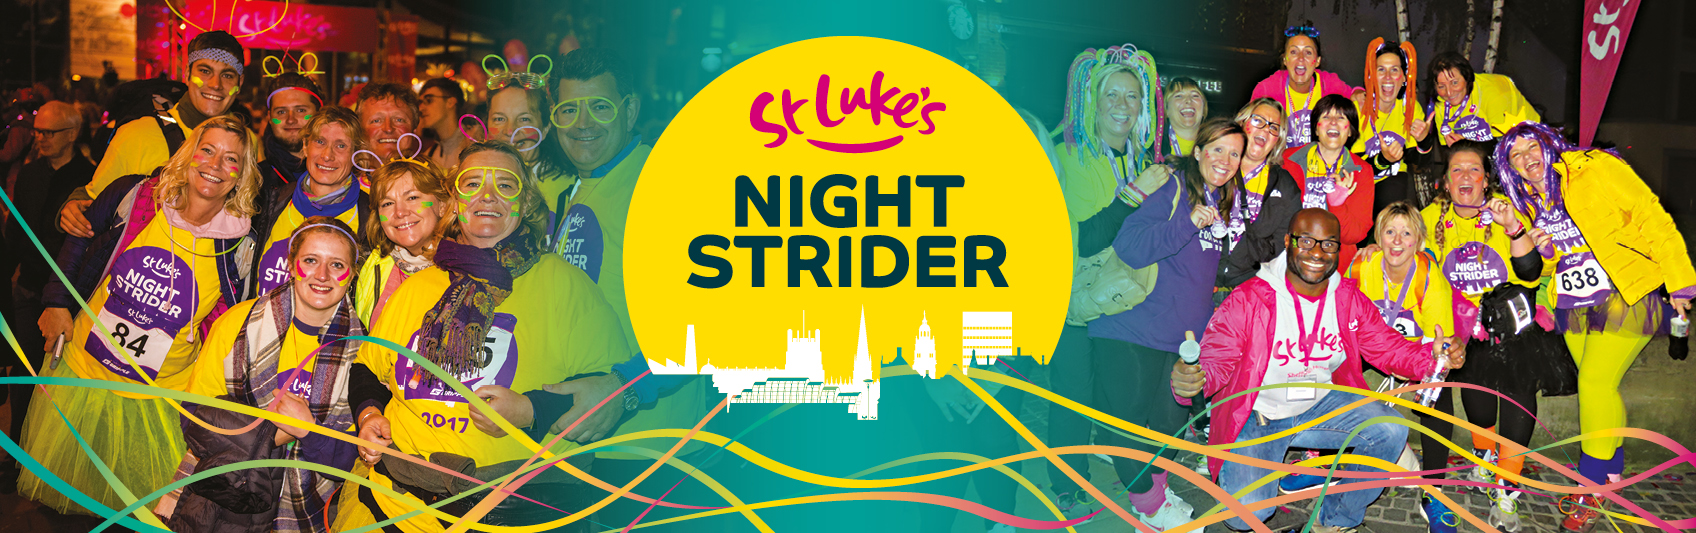 EES Showhire provide event management services to the Sheffield Night Strider charity event on behalf of St Luke's Hospice